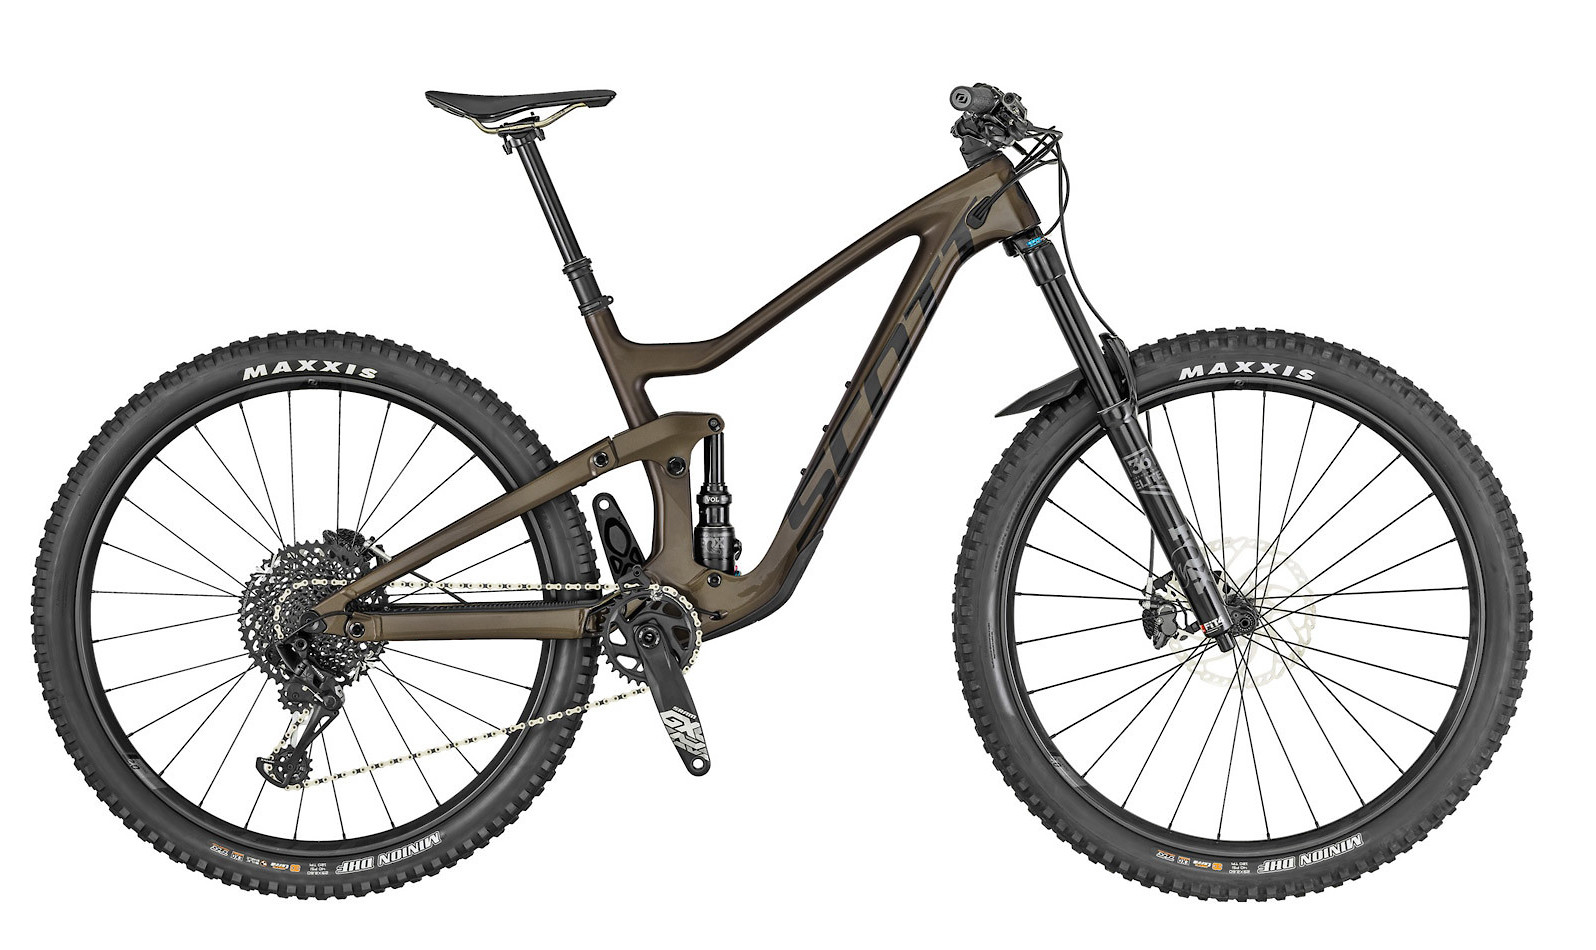 2019 Scott Ransom 910 Bike